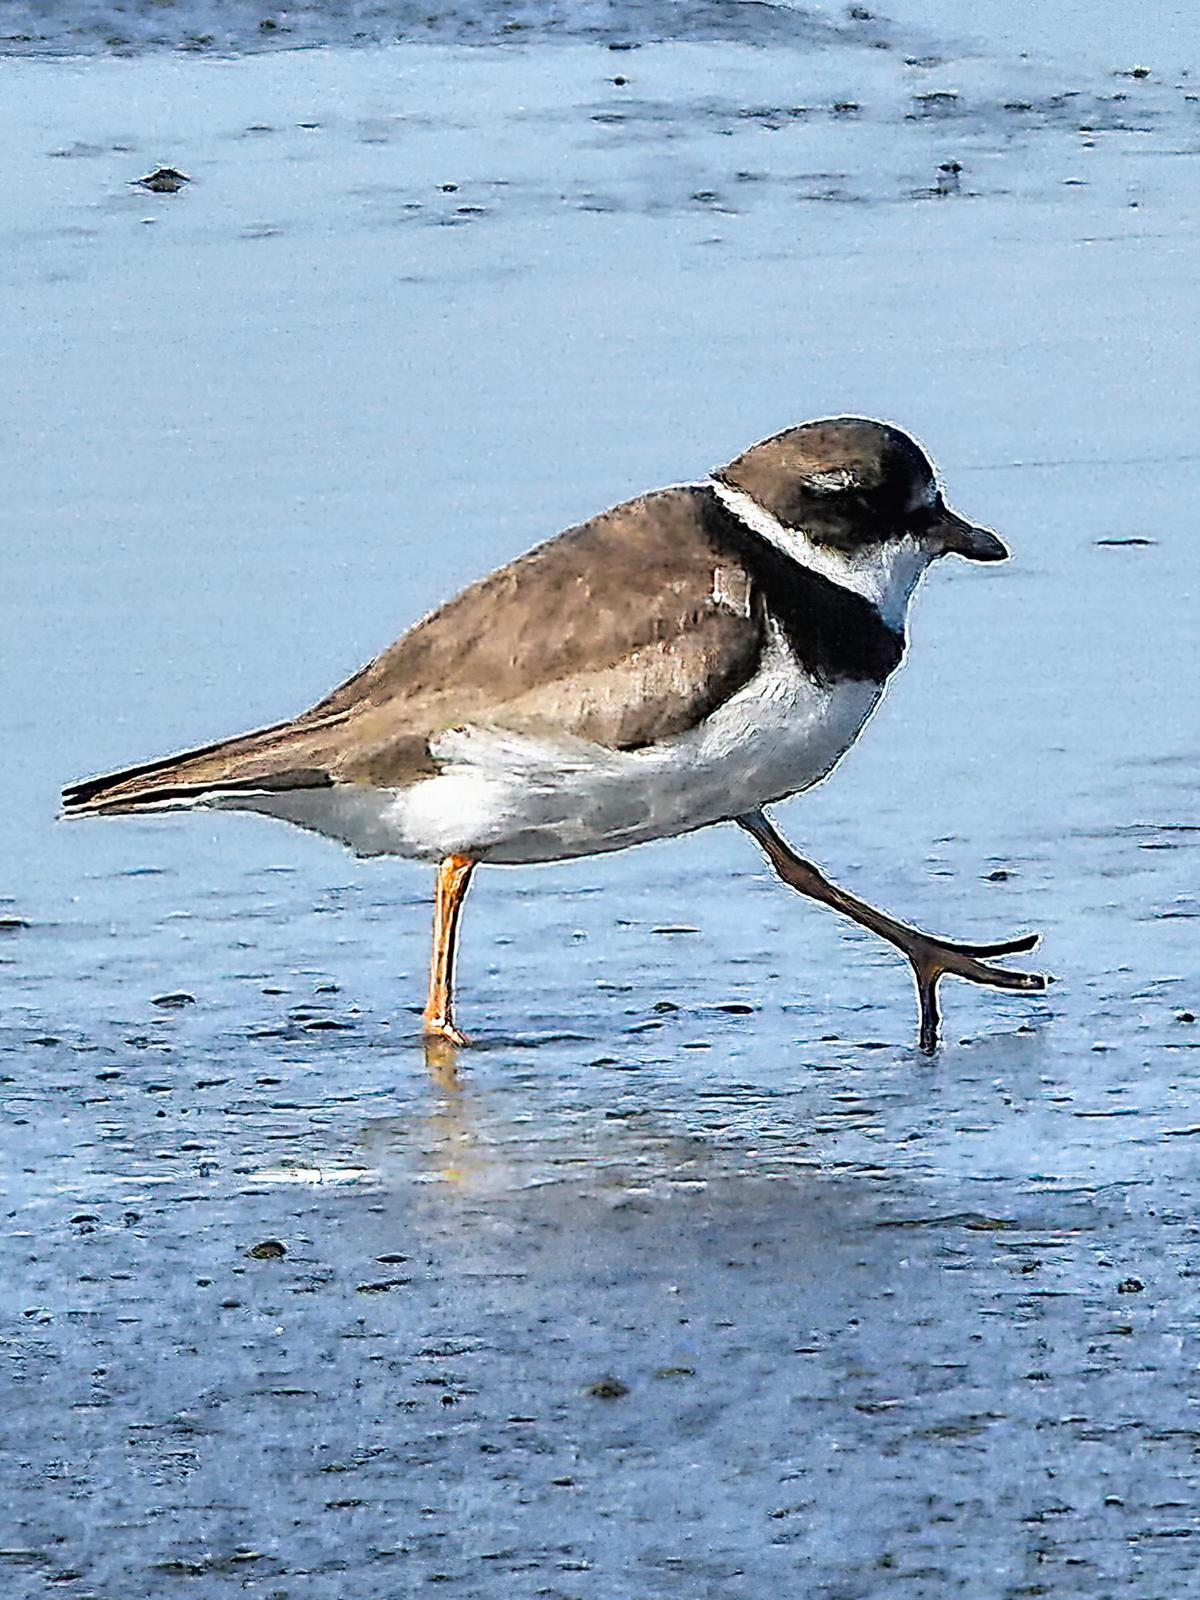 Semipalmated Plover Photo by Dan Tallman